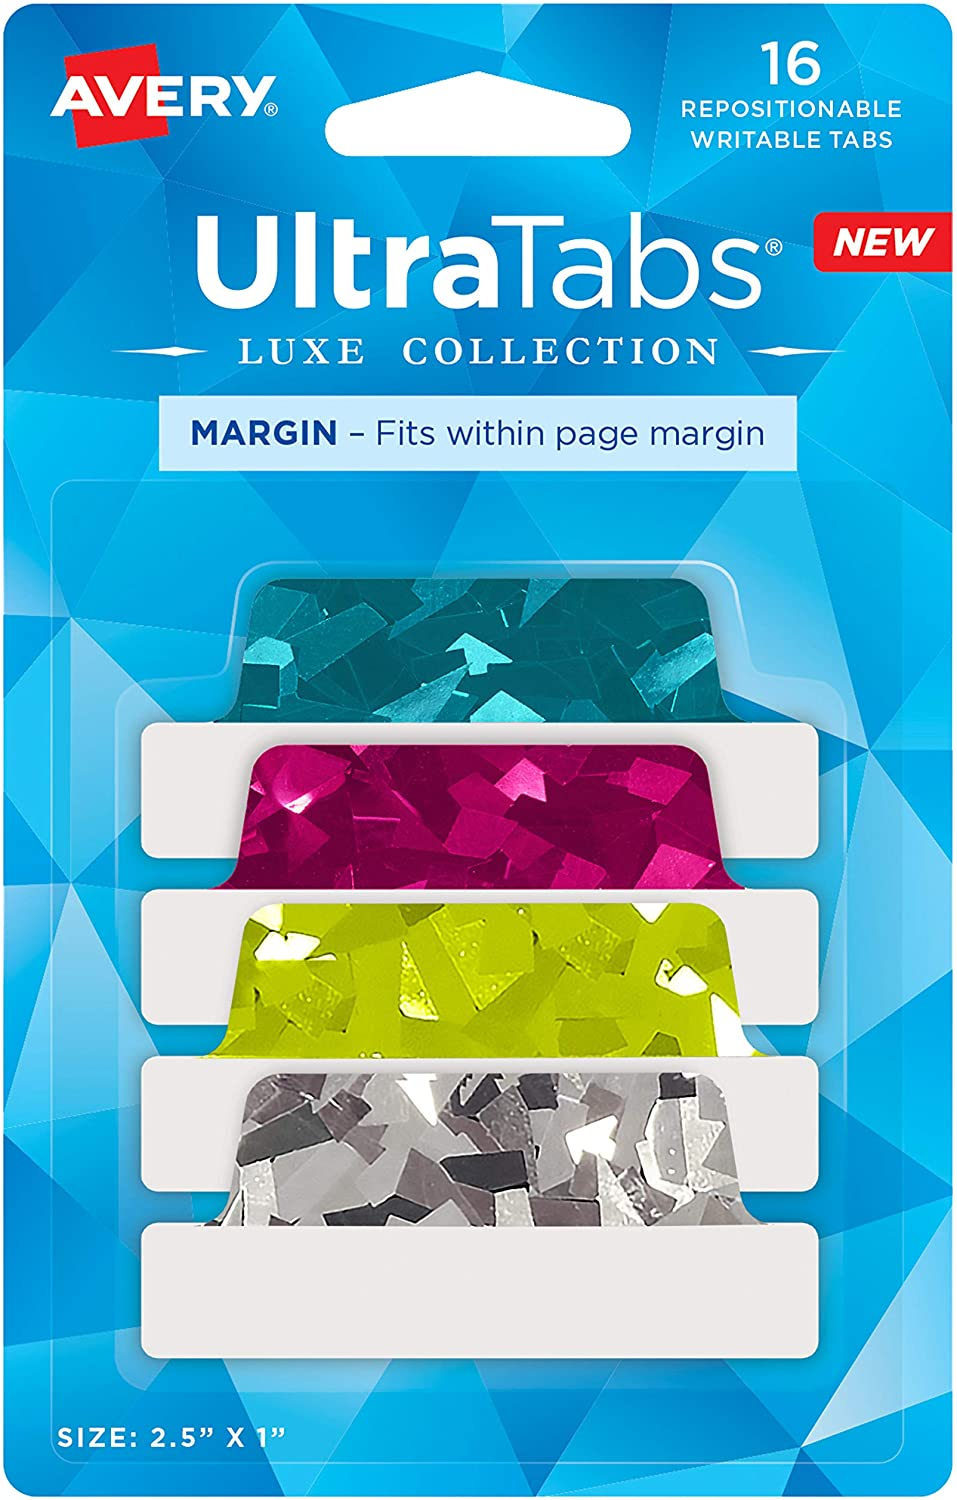 """Avery Margin Ultra Tabs, 2.5"""" x 1"""", Holographic Jewel Tone Colors, 16 Repositionable Page Tabs (74147)"""